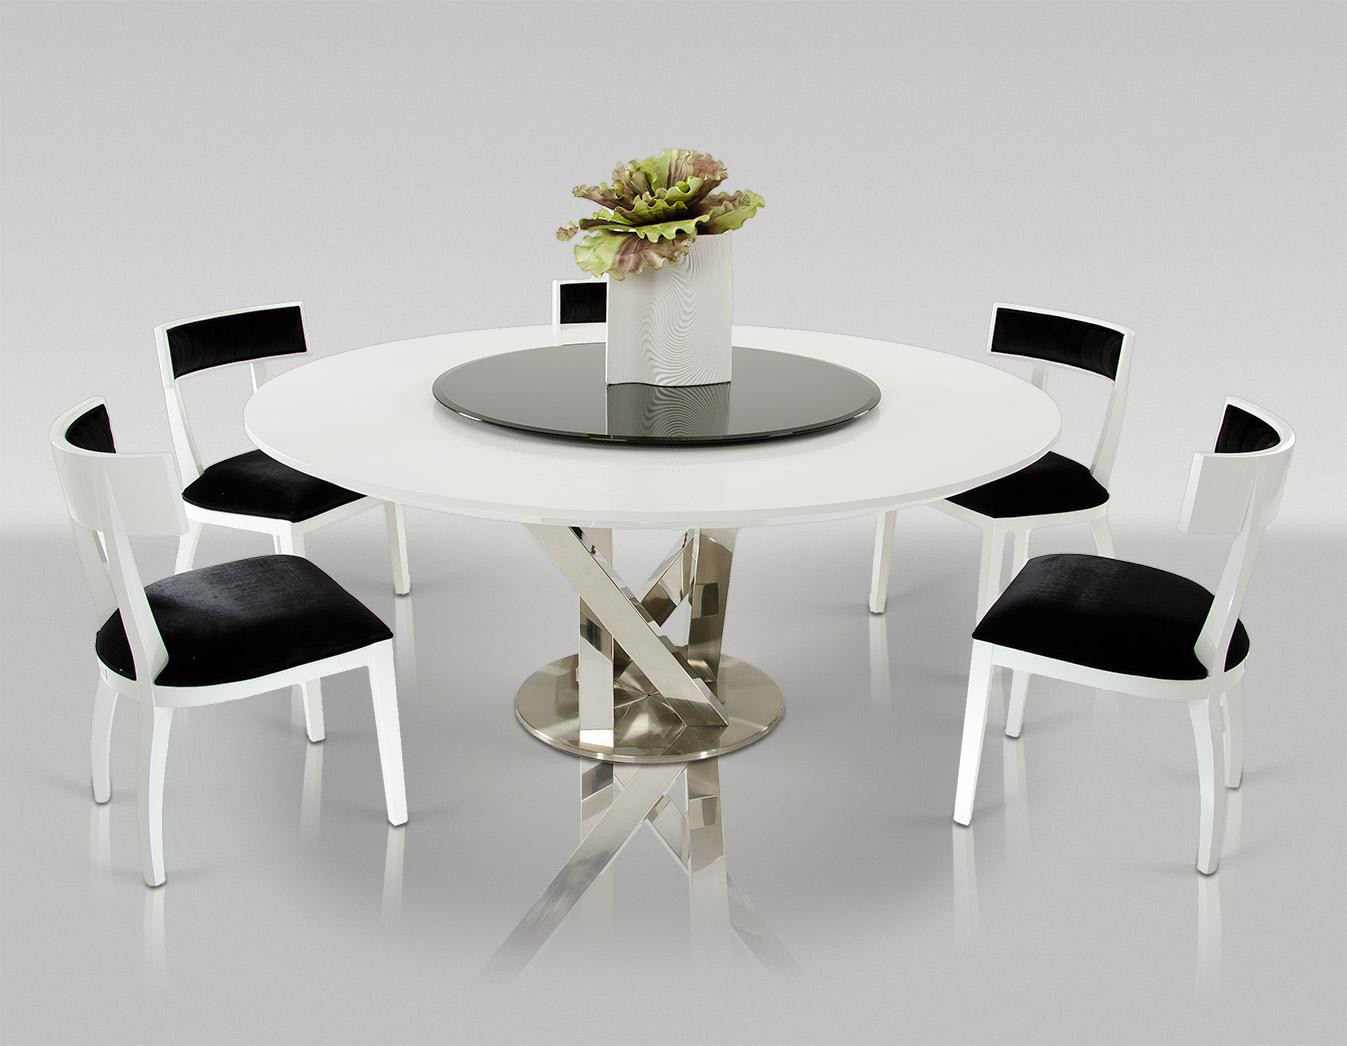 Best ideas about Modern Round Dining Table . Save or Pin A&X Spiral Modern Round White Dining Table with Lazy Susan Now.